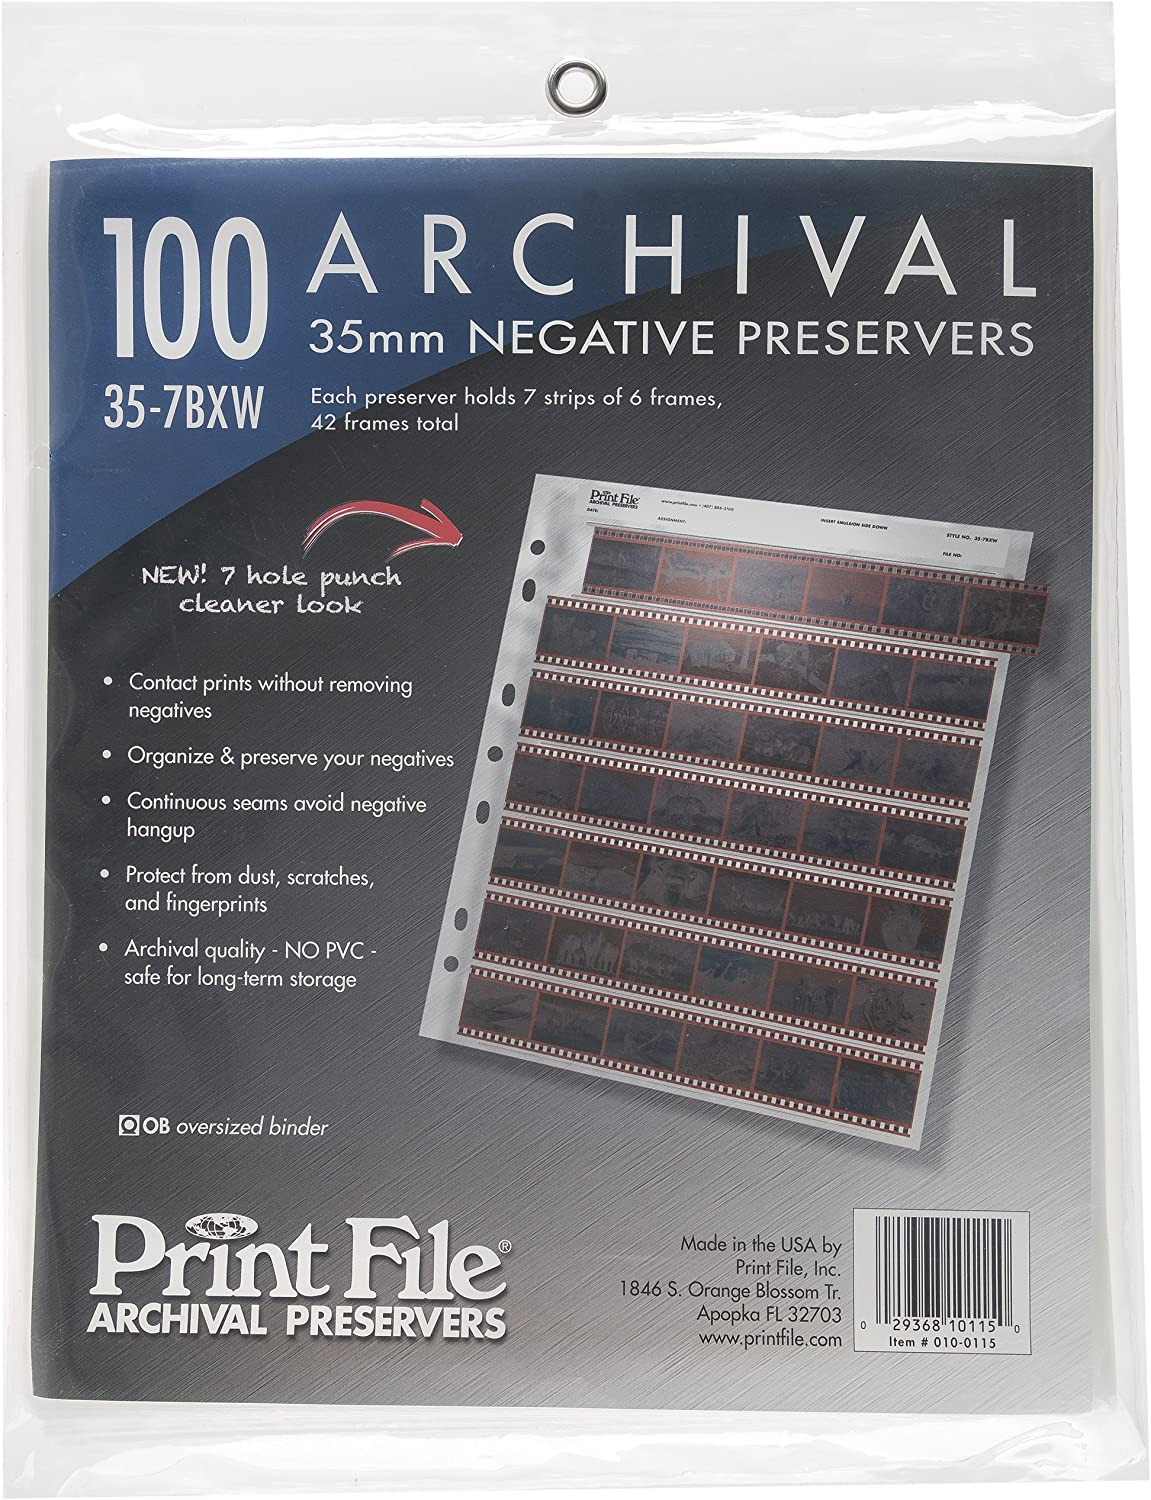 Print File 35mm Size Archival Storage Pages for Negatives 25 Pack x 2 6-Strips of 6-Frames